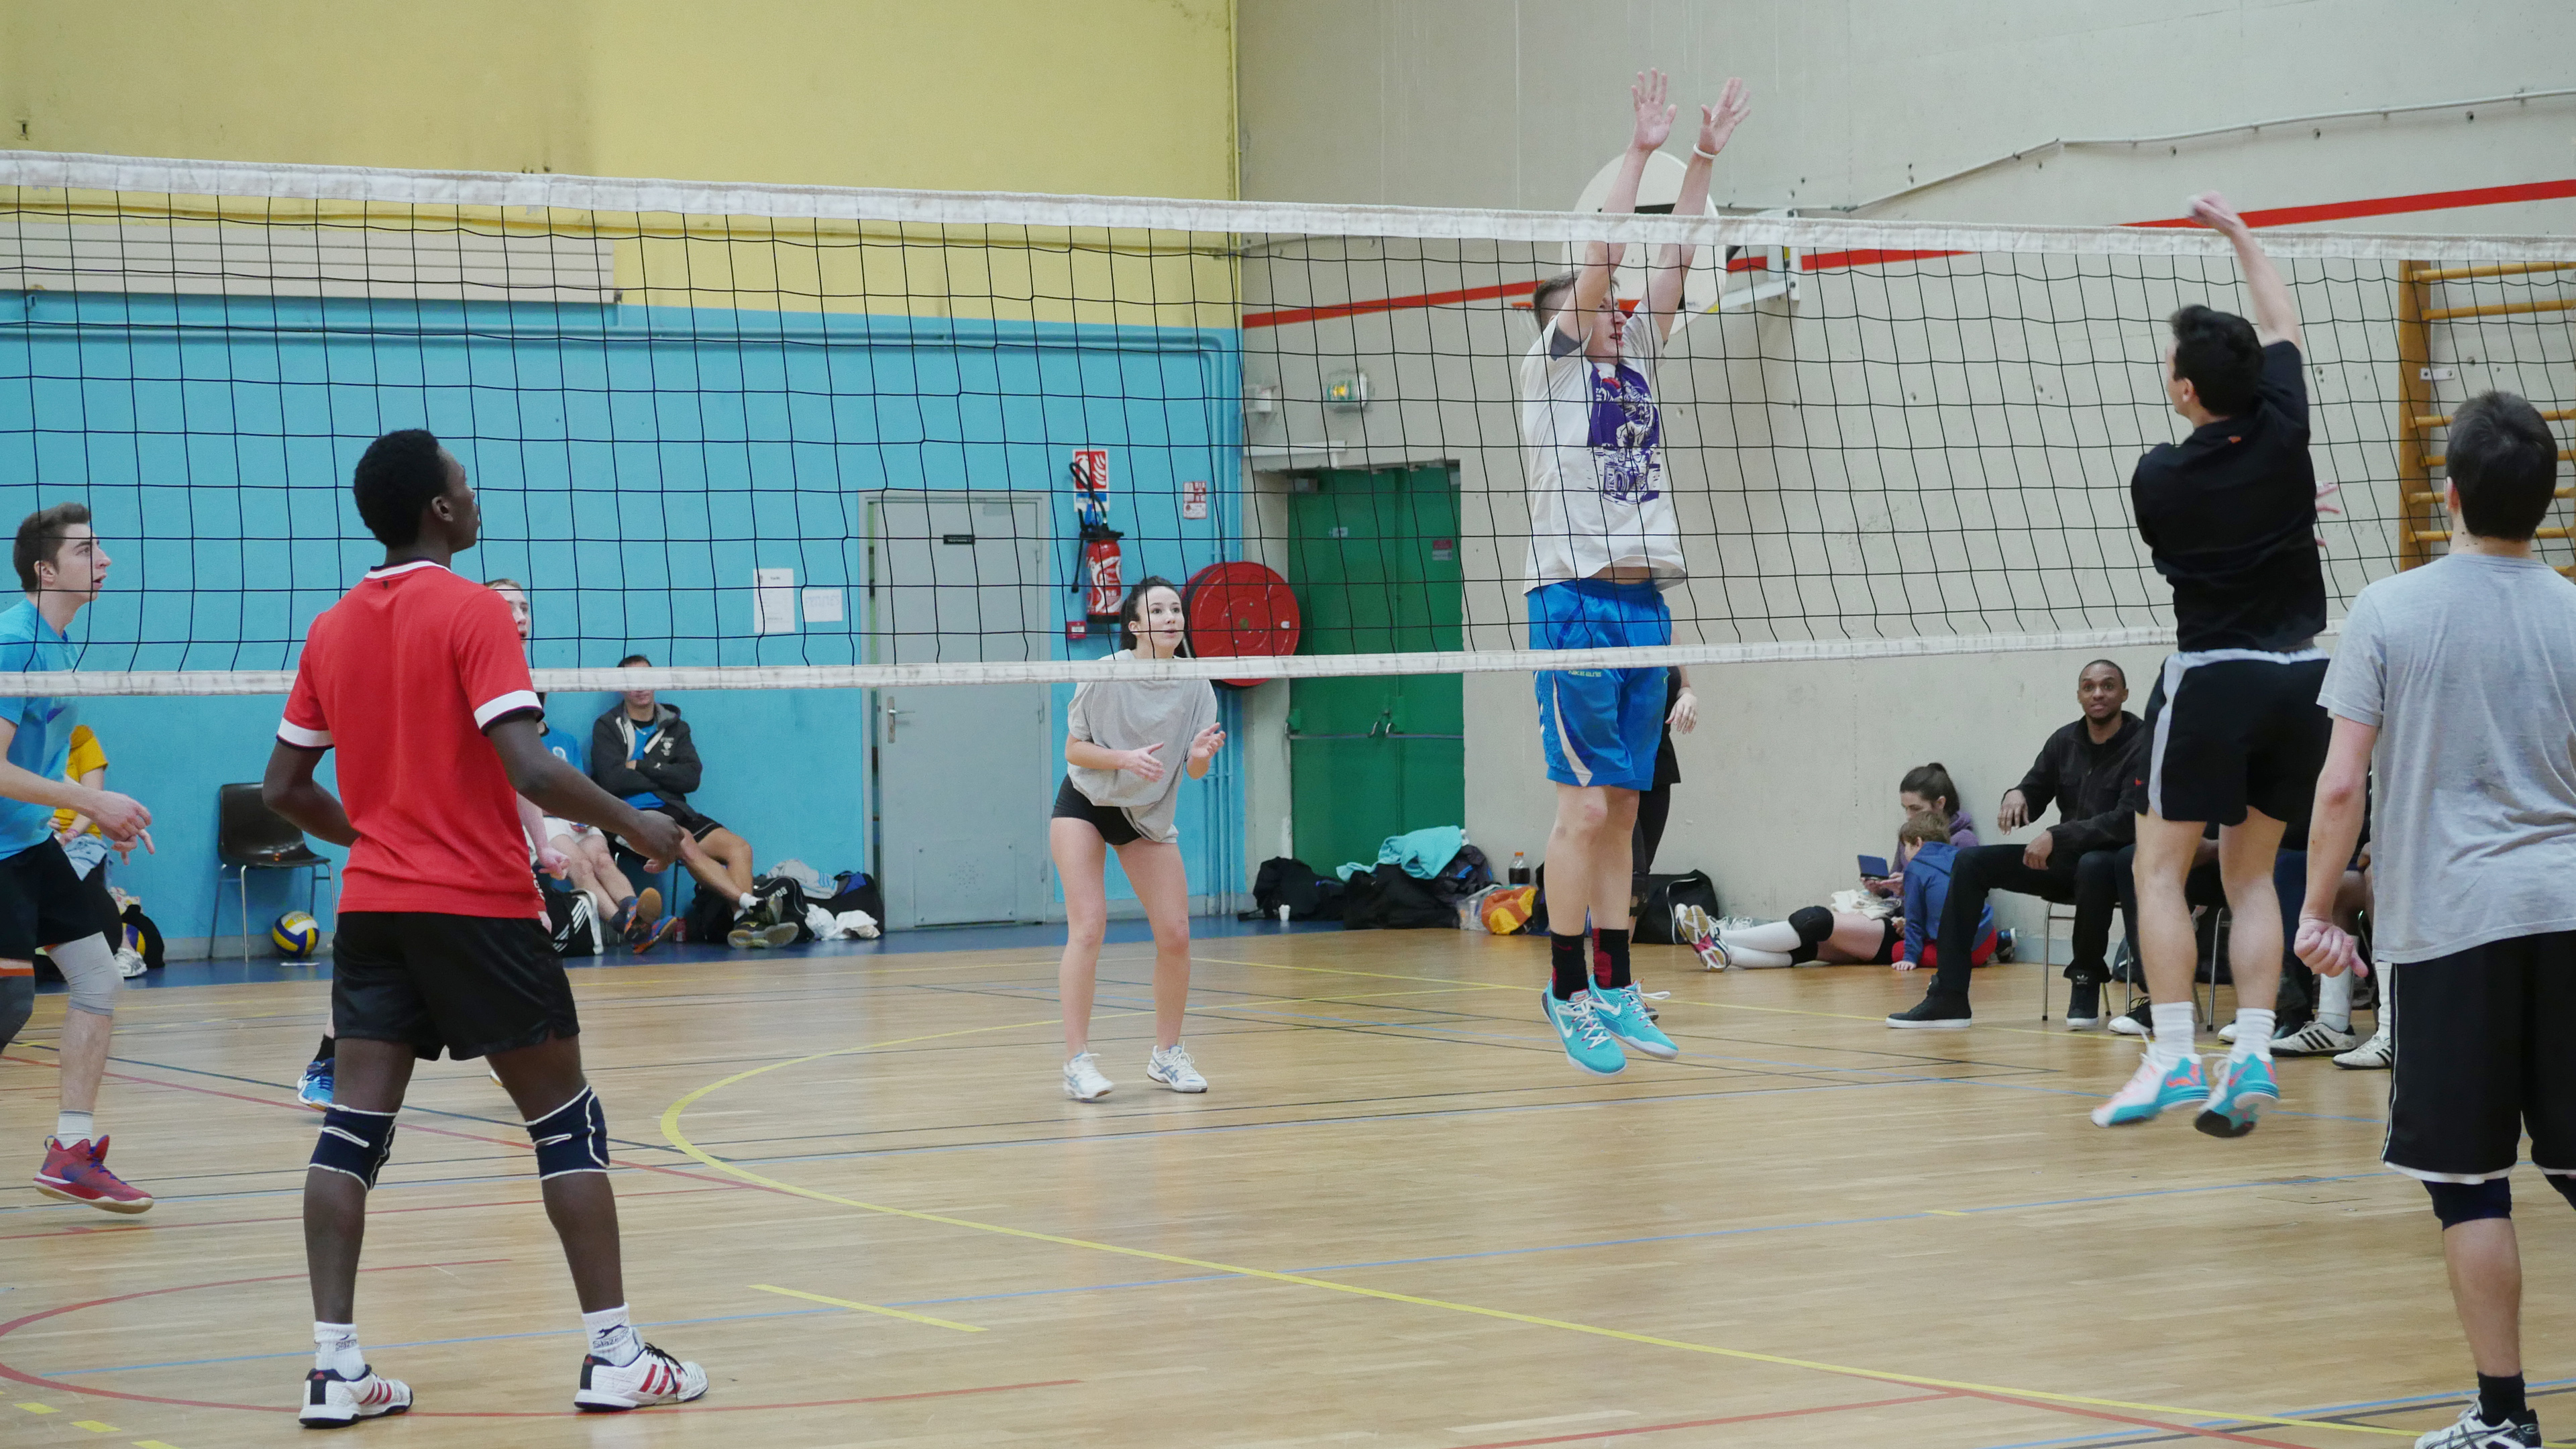 Tournoi Volley USMA 2015-41.JPG